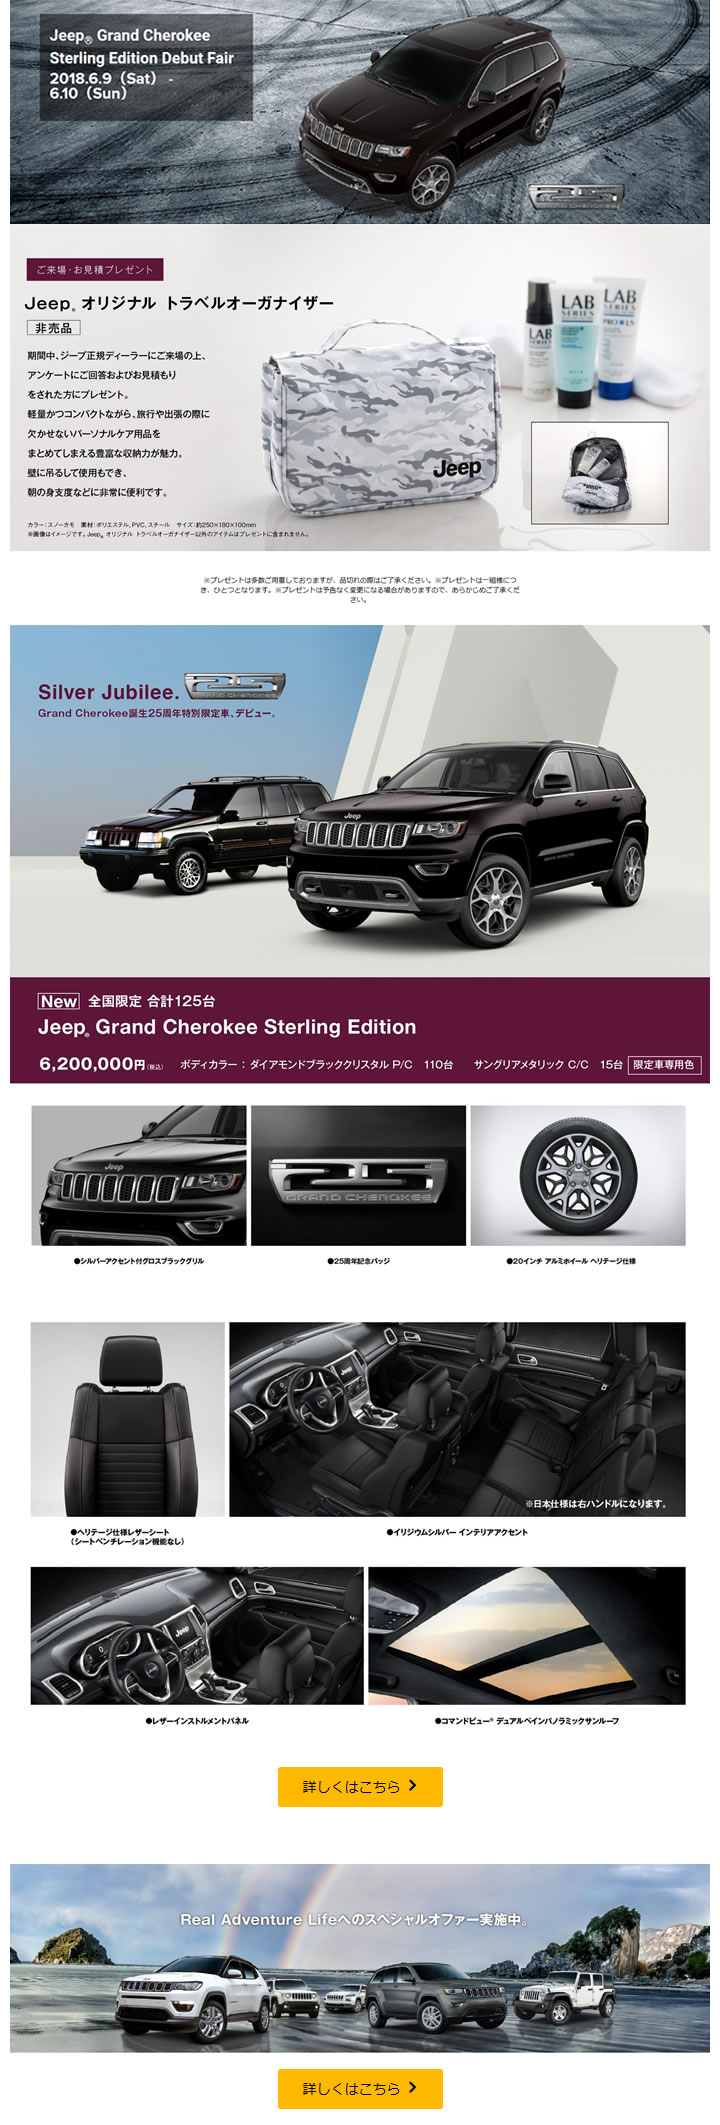 Jeep Grand Cherokee Sterling Edition Debut Fair 2018.6.9(sat)-6.10